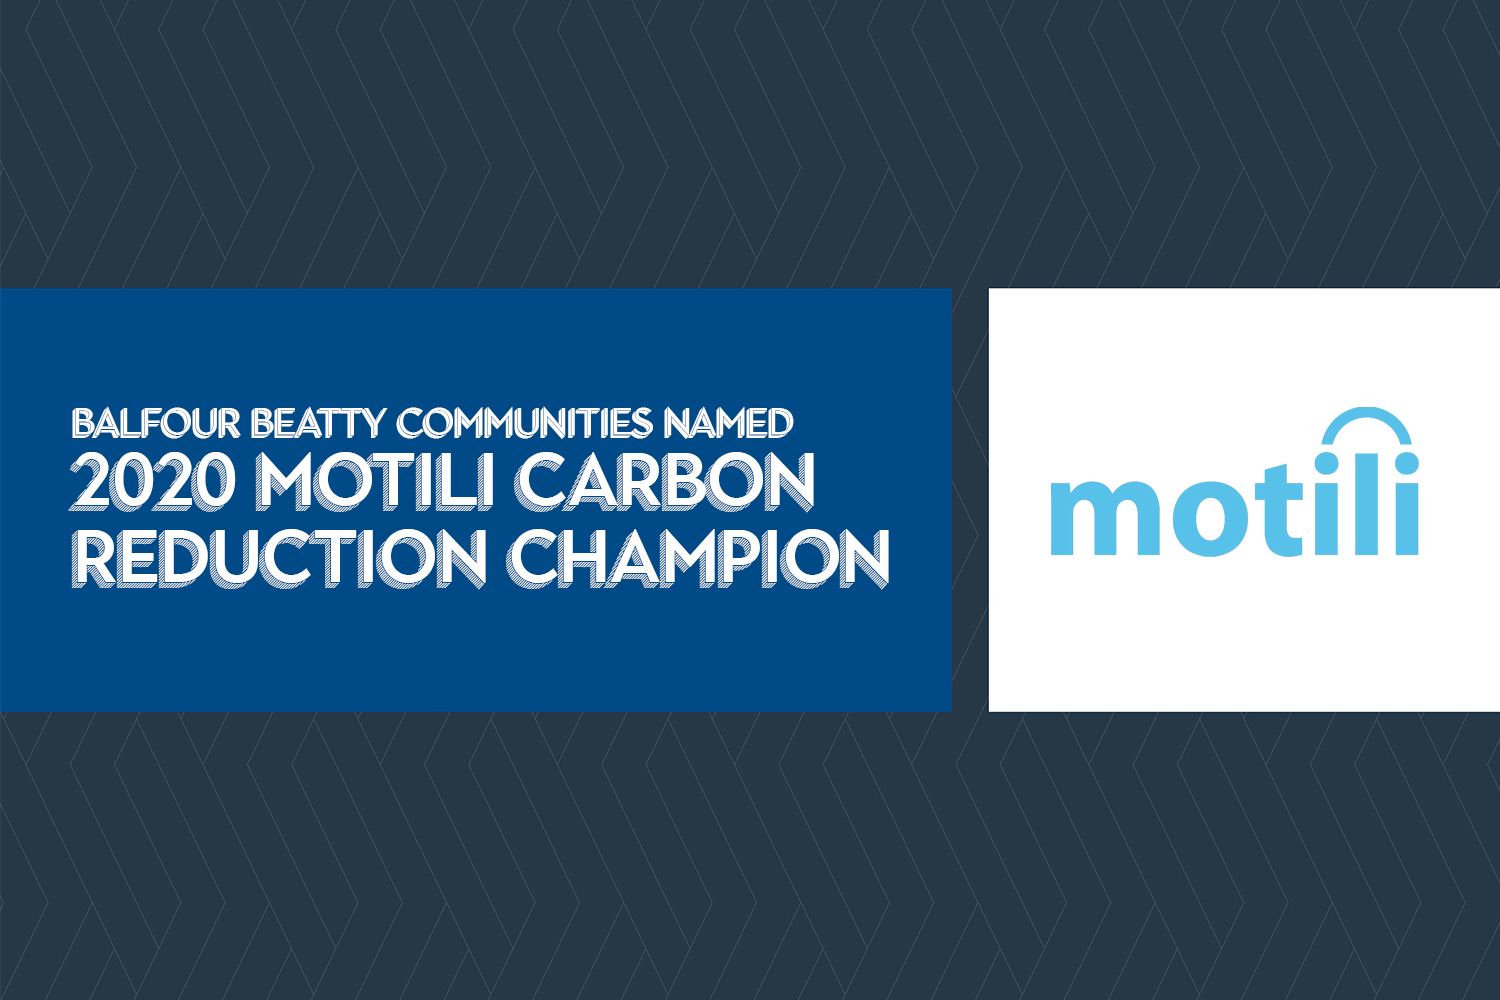 Balfour Beatty Communities Named 2020 Motili Carbon Reduction Champion